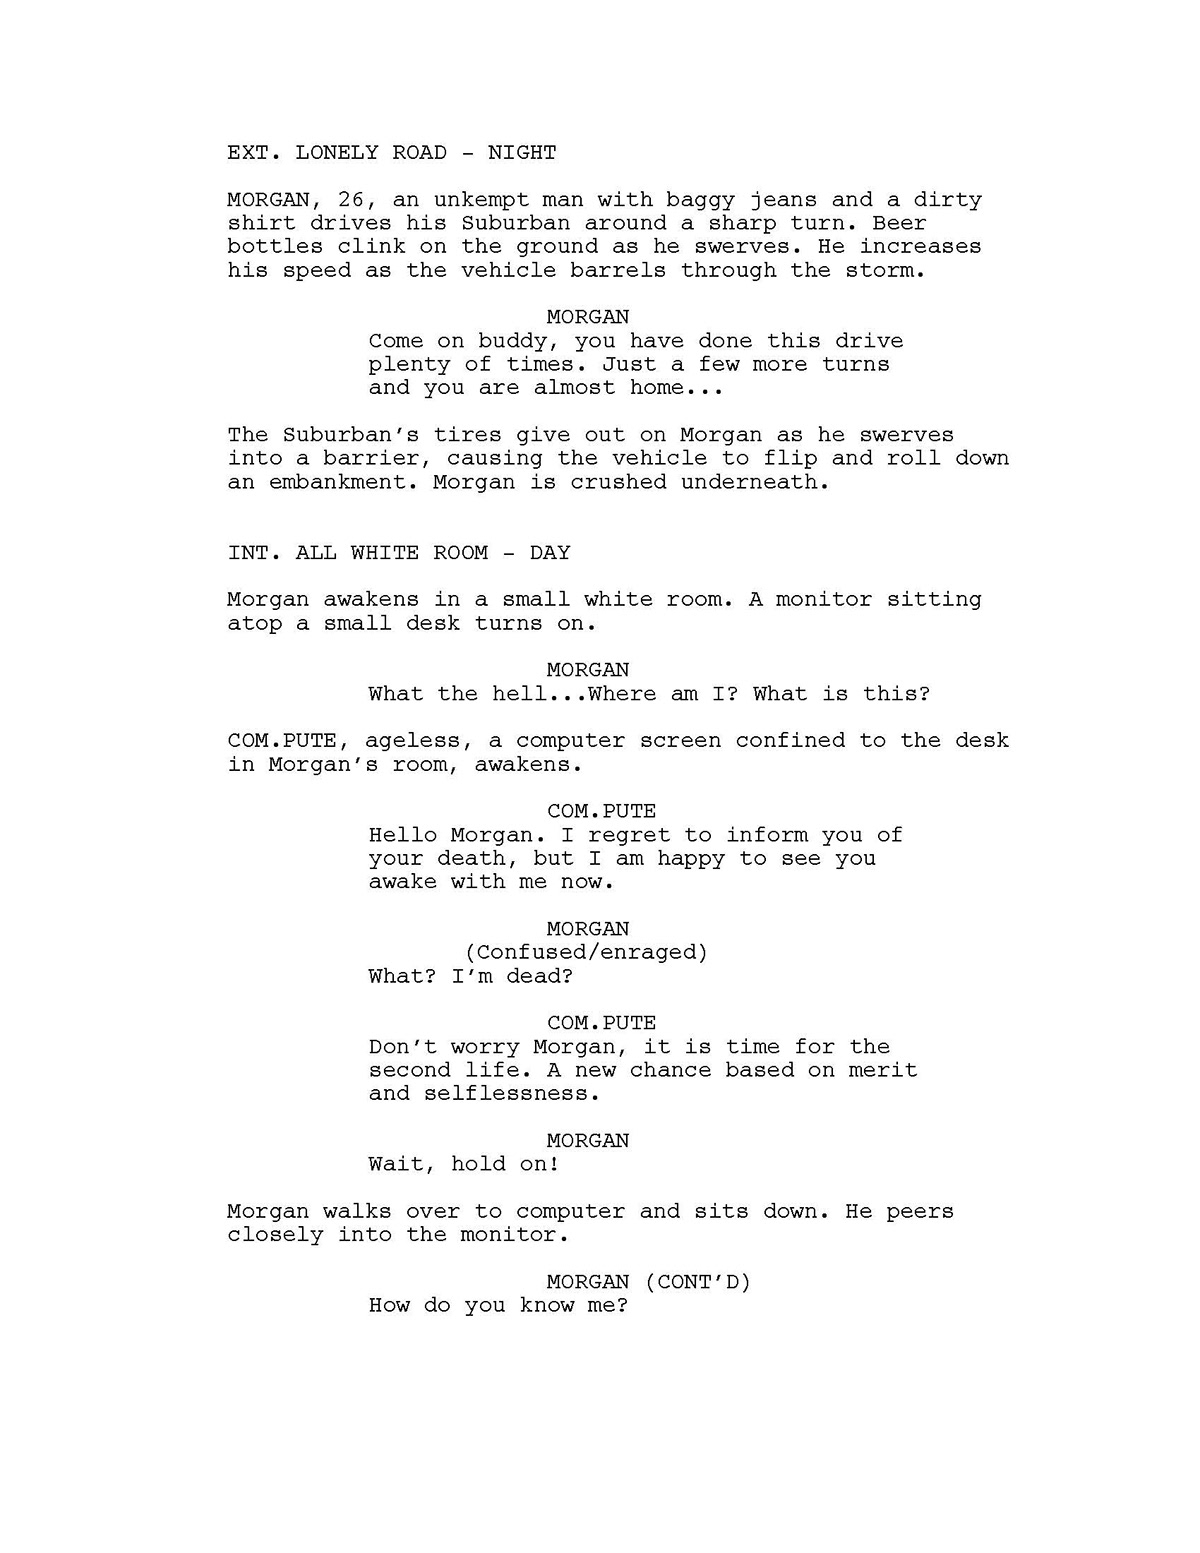 Re-Birth (Short Film Script) on Student Show